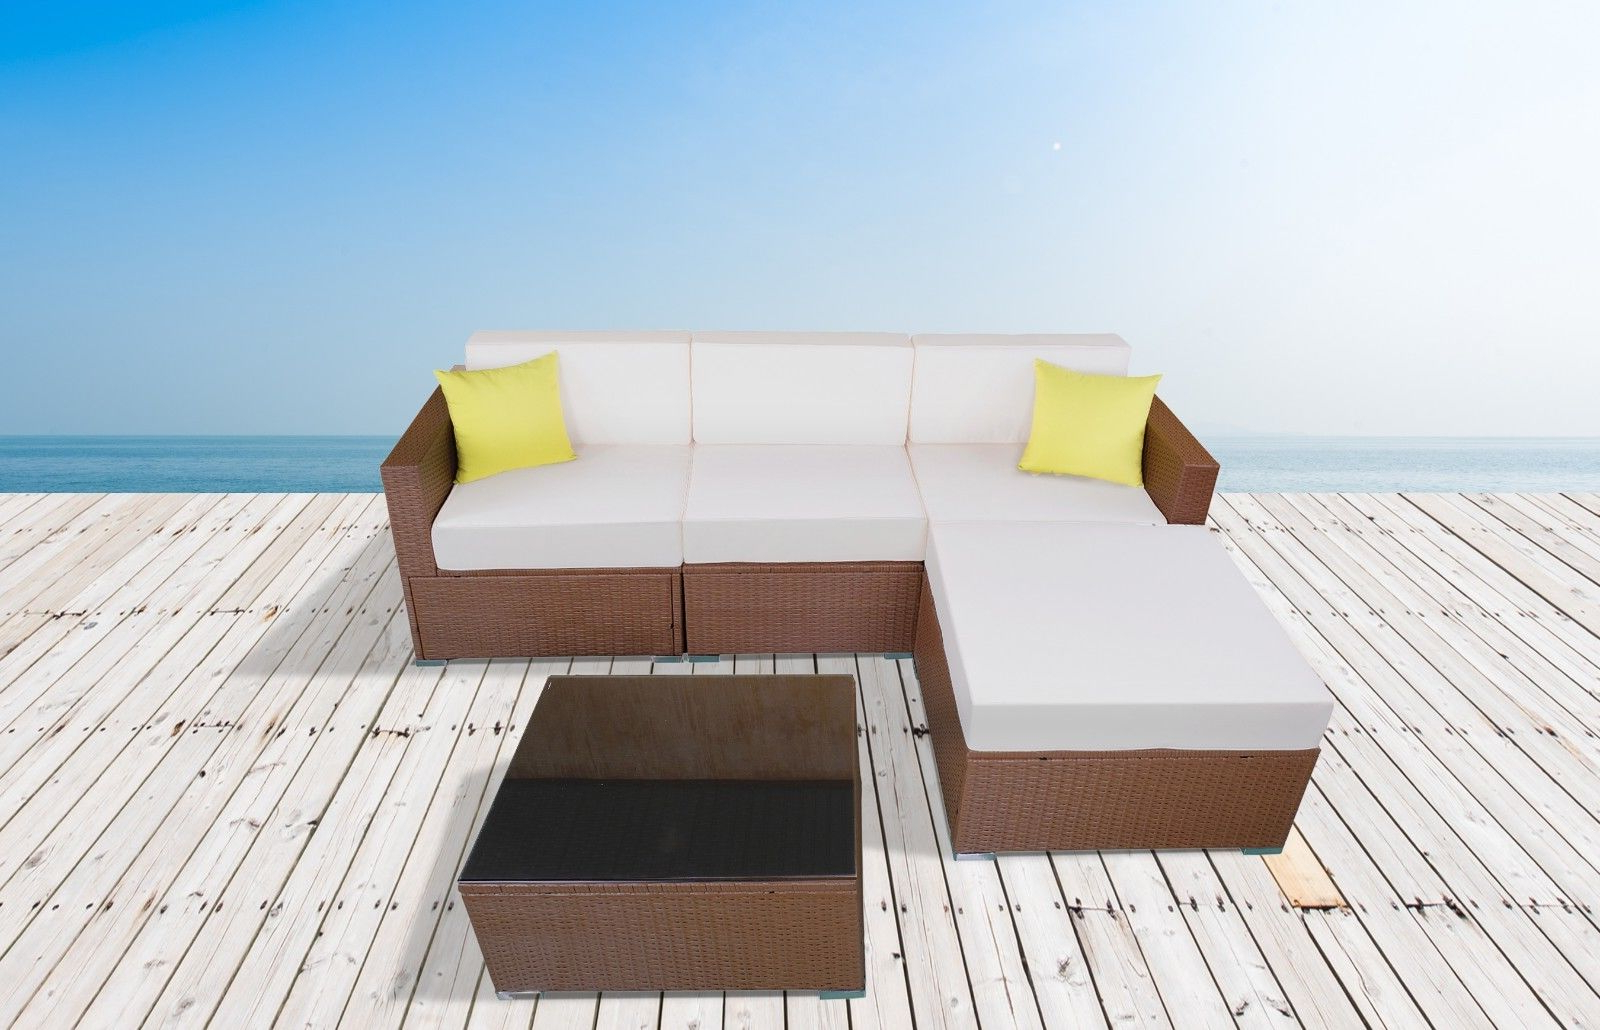 Ellison Patio Sectionals With Cushions With Regard To Latest Mcombo 5Pc Outdoor Rattan Sofa Wicker Chair Patio Furniture With Table  Sectional Set 5 Pc Cream White Pf 6081 5Pc Cw (View 9 of 20)